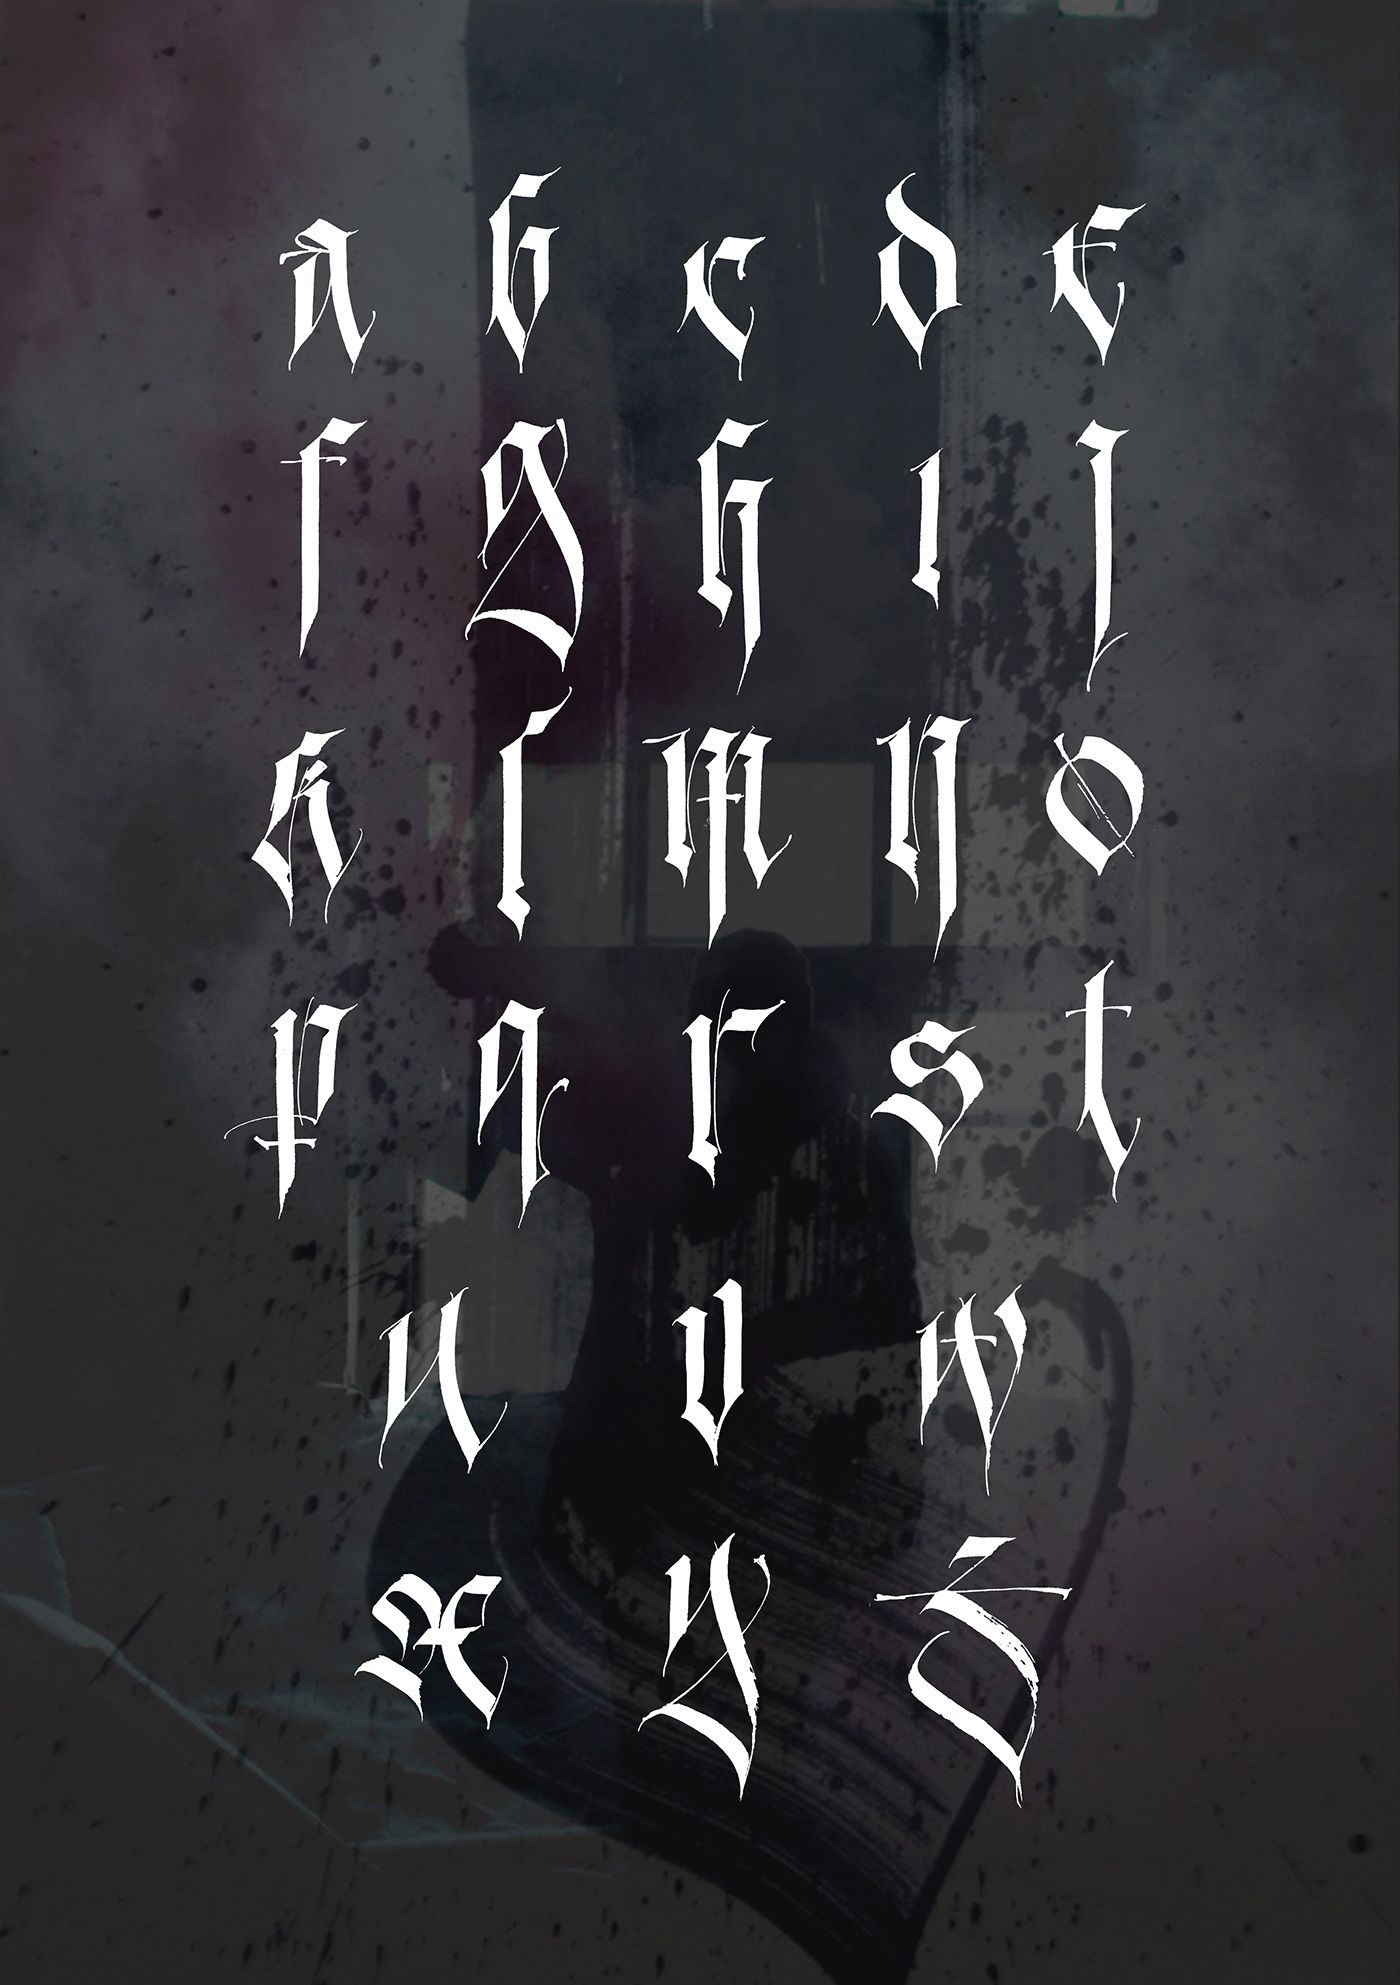 Im proud to present my personal gothic alphabet. It is based on Fraktur. A lot of glyphs are transformed and renewed. Enjoy!